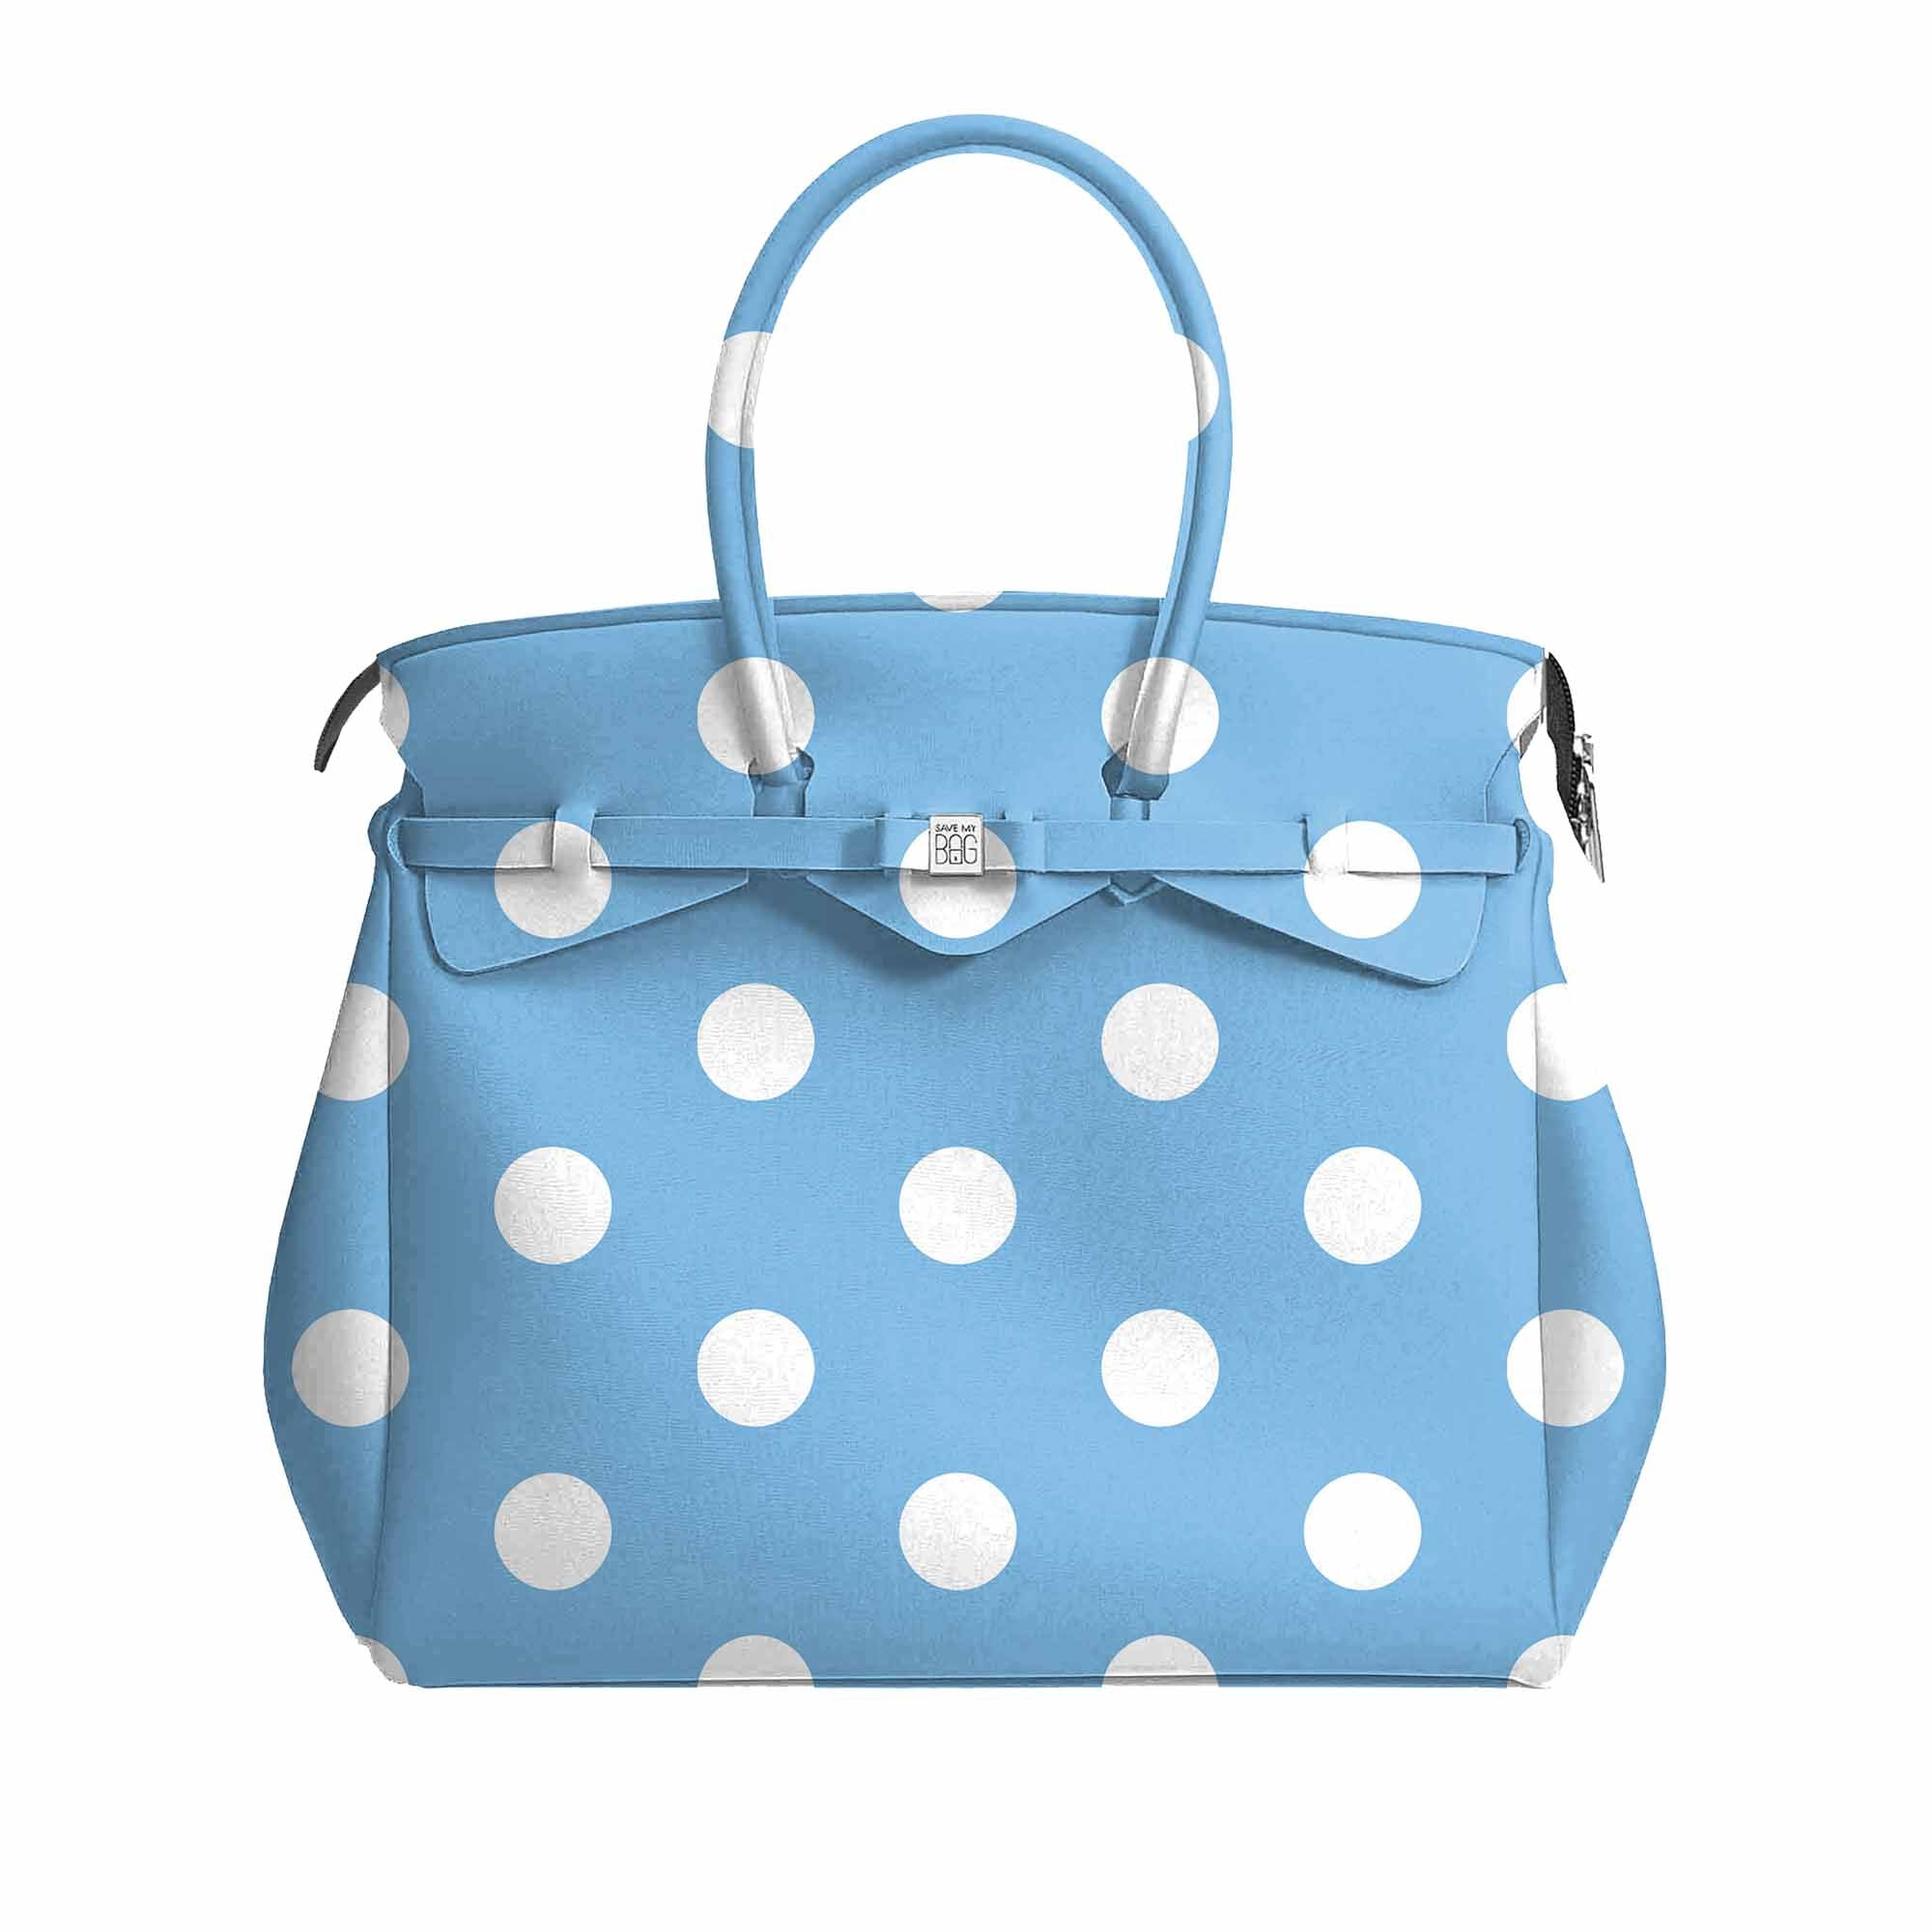 MISS WEEKENDER PLUS SALE